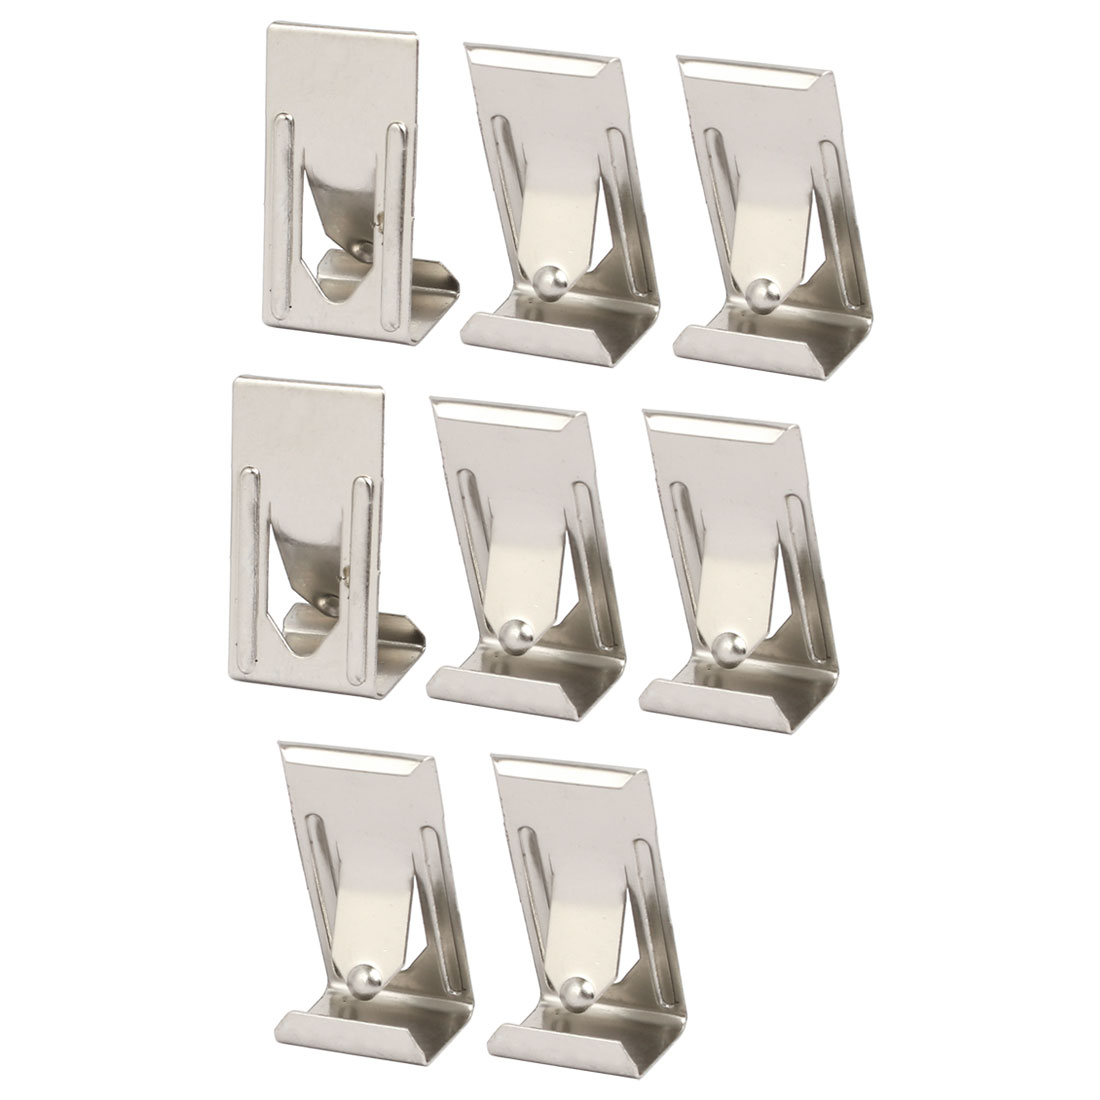 26mmx14mm Picture Photo Frame Metal Spring Turn Clip Hanger Siver Tone 8pcs